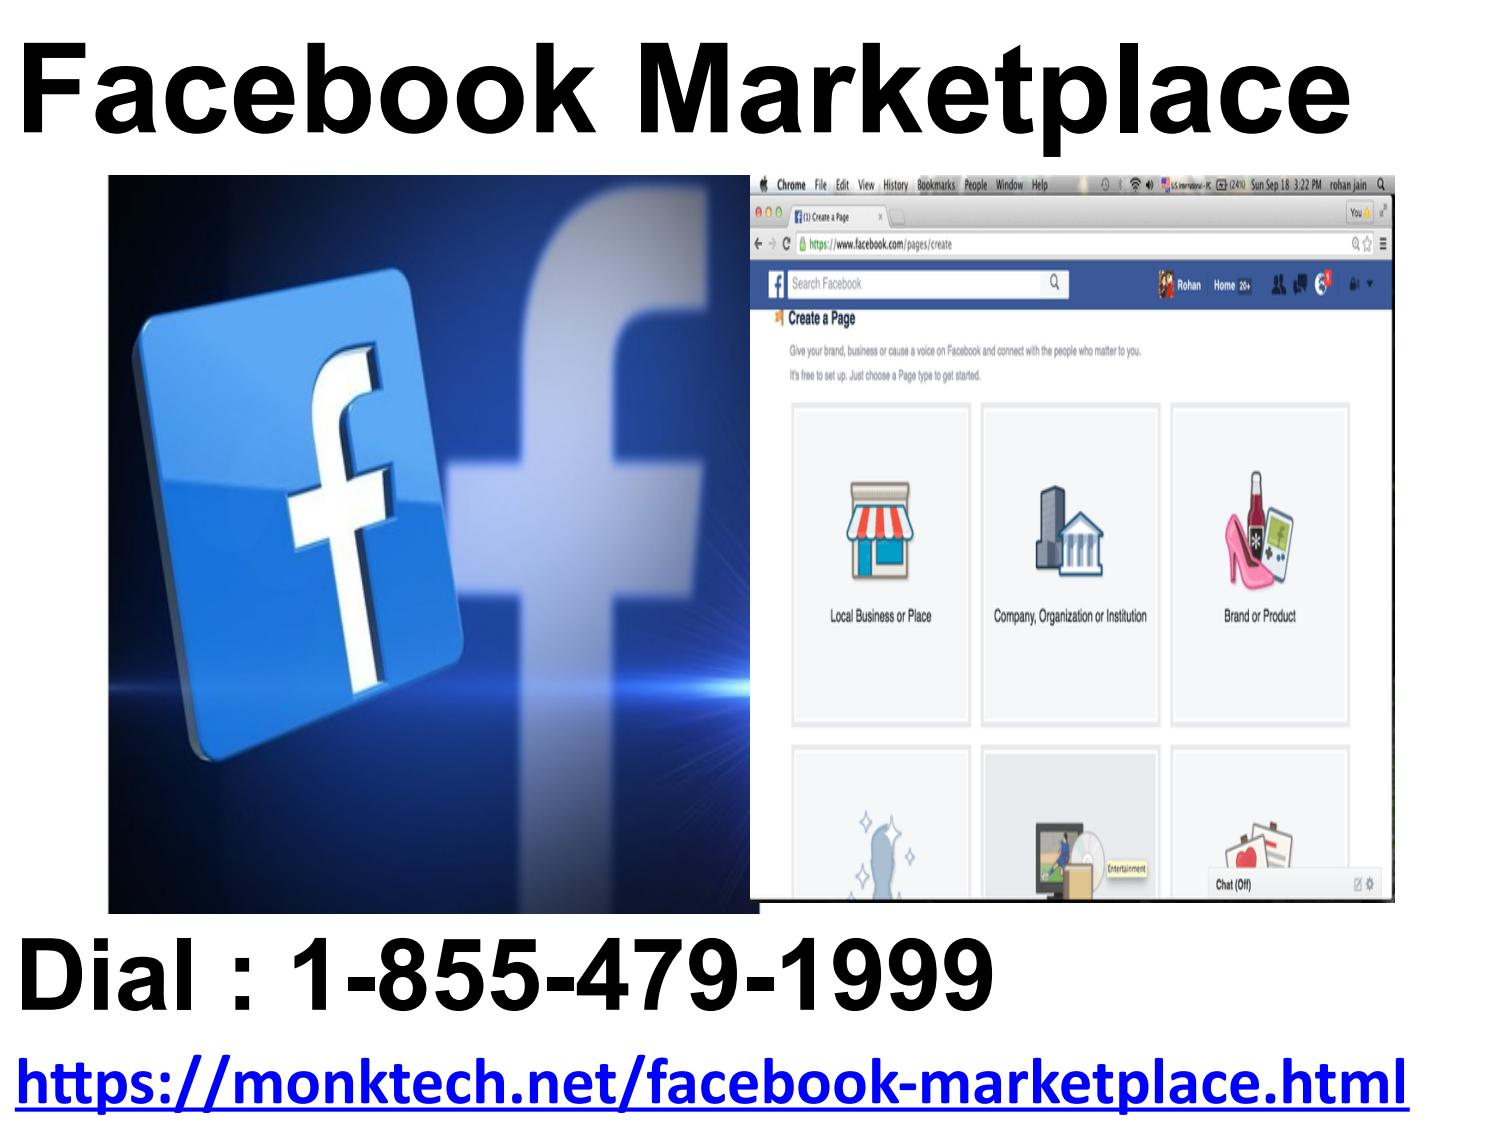 Want to see someone's facebook marketplace profile? Call the